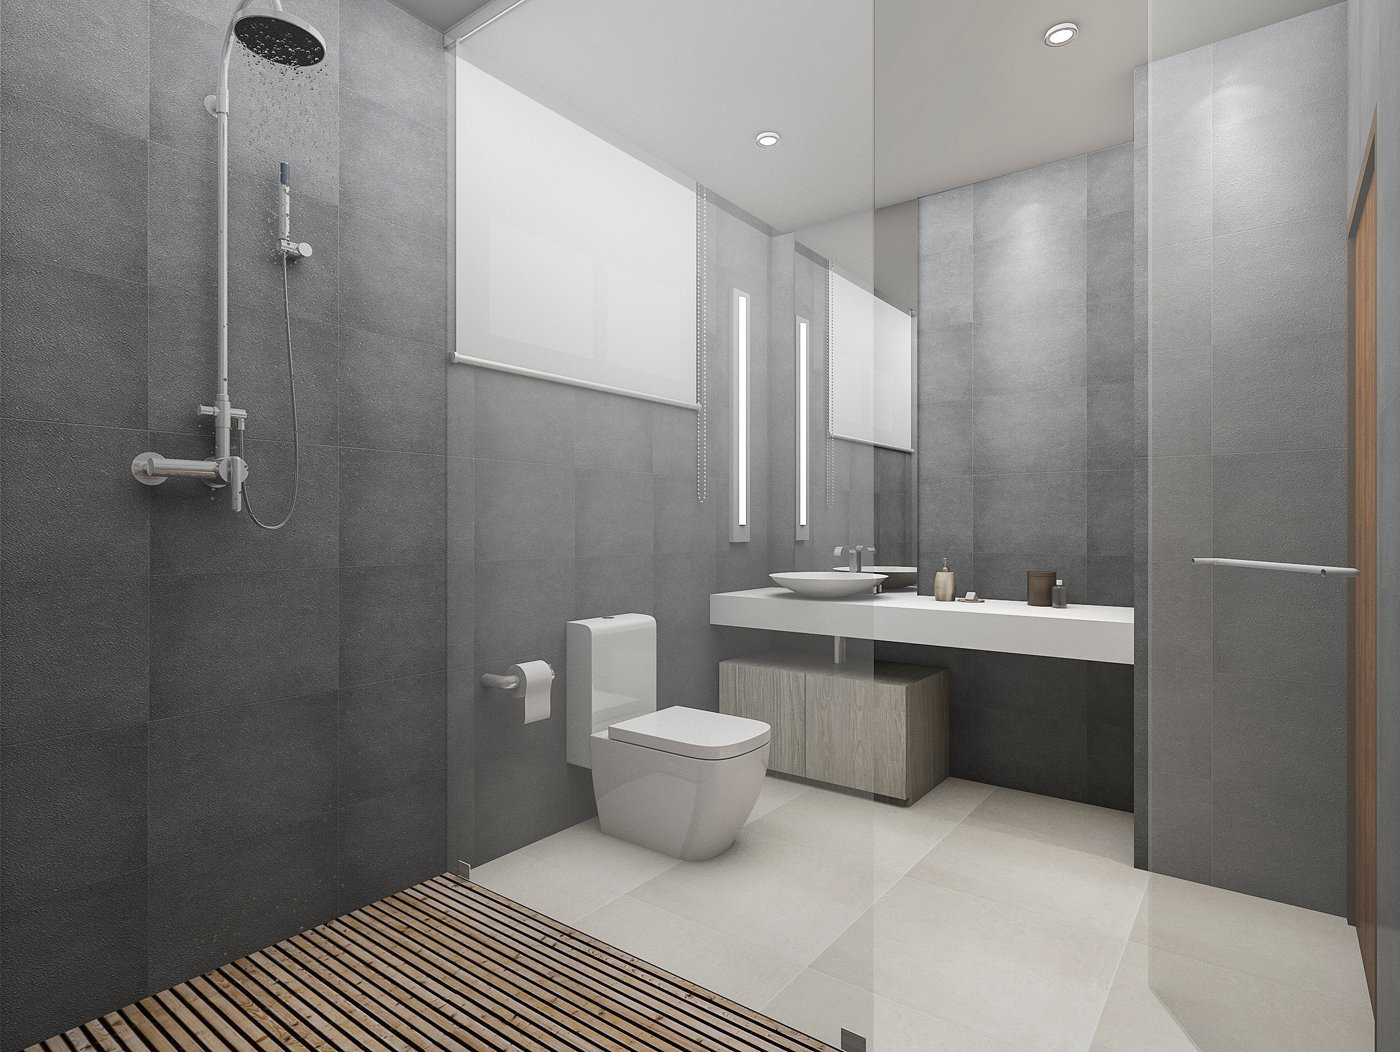 Bathroom Remodels: Everything You Need to Know